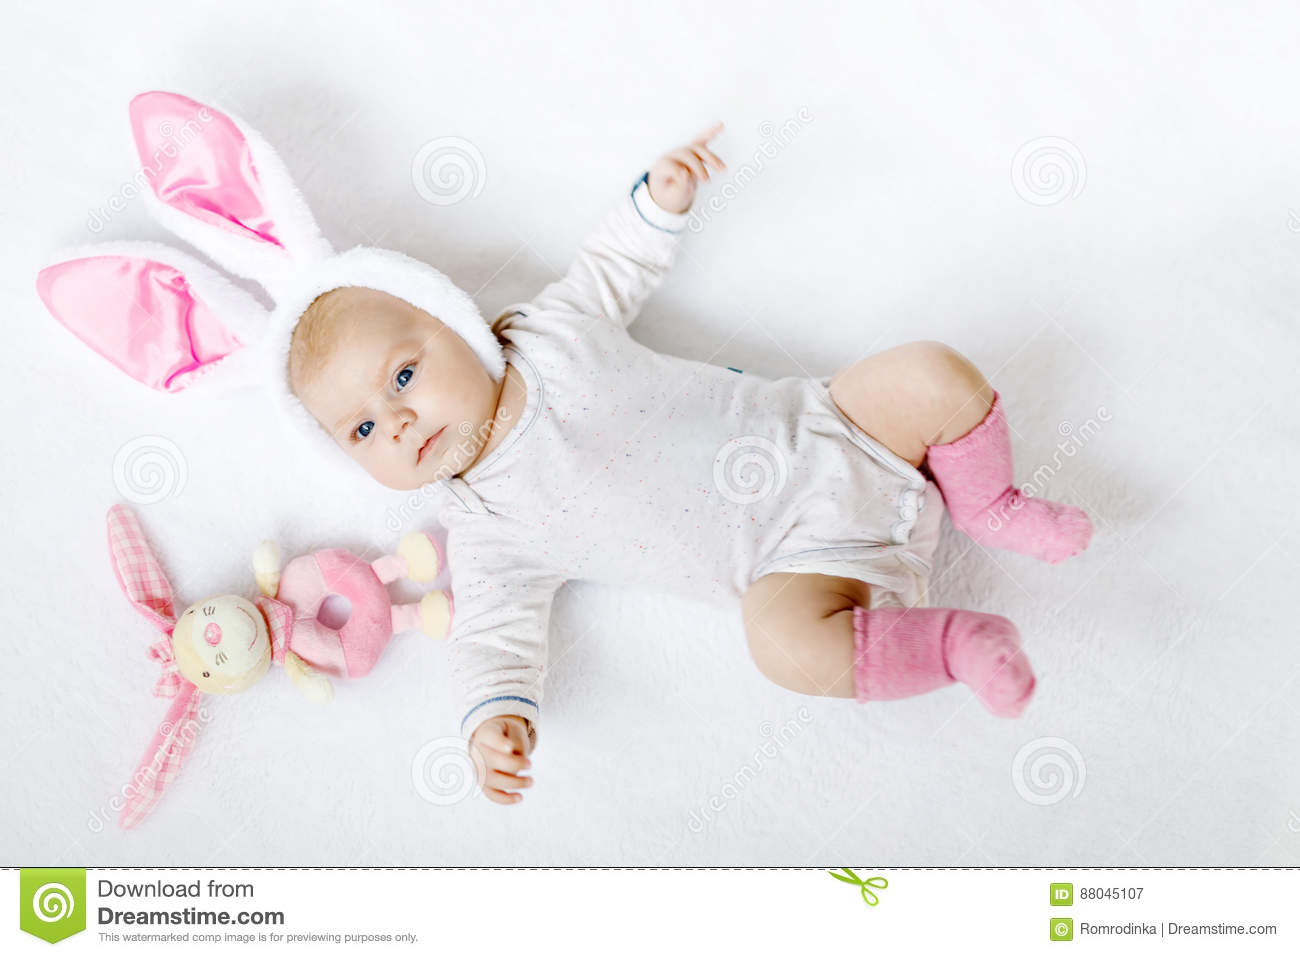 Adorable Cute Newborn Baby Girl Easter Bunny Toy